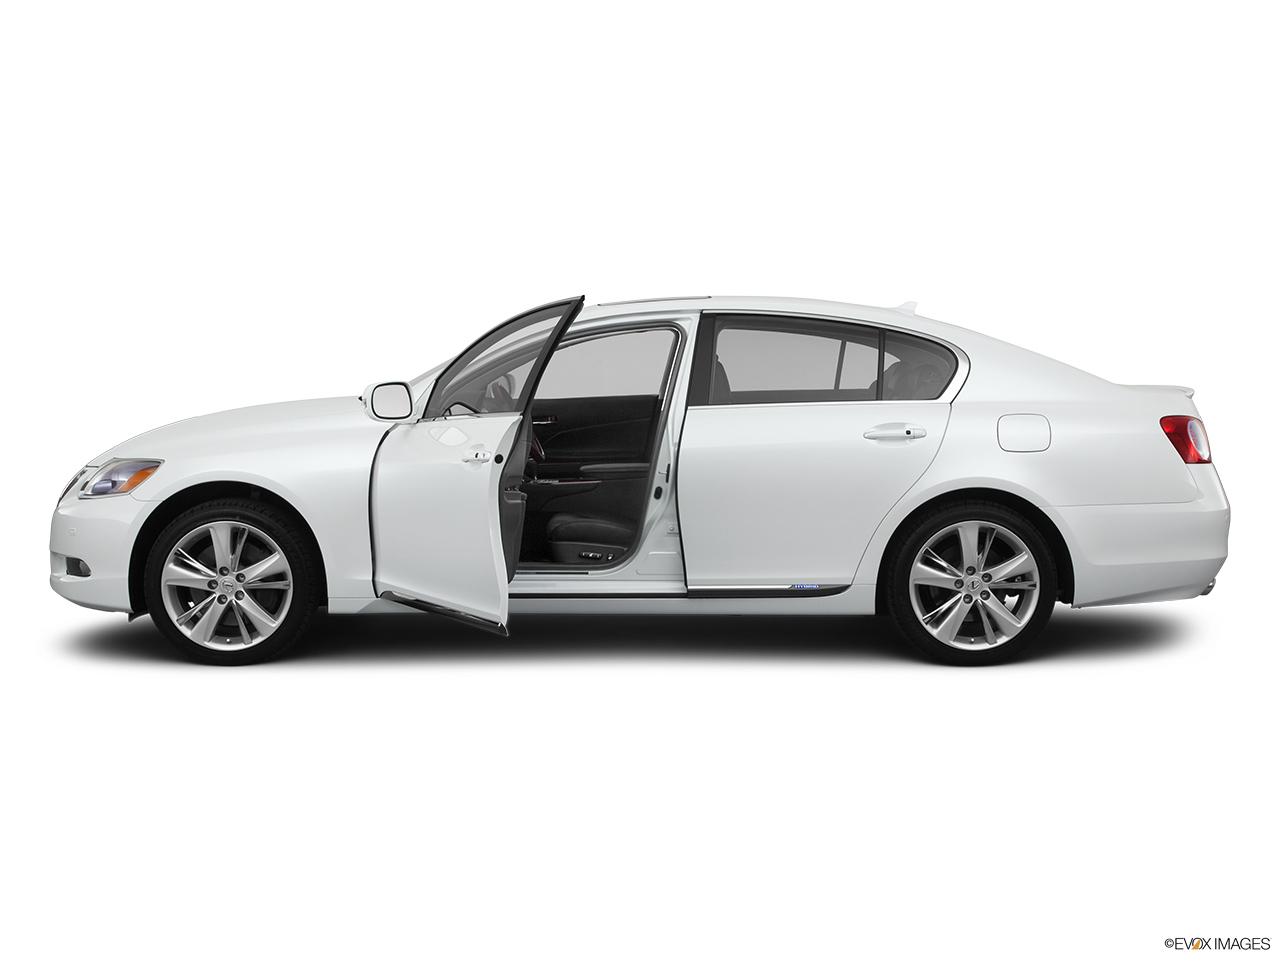 2011 Lexus GS Hybrid GS450h Driver's side profile with drivers side door open.